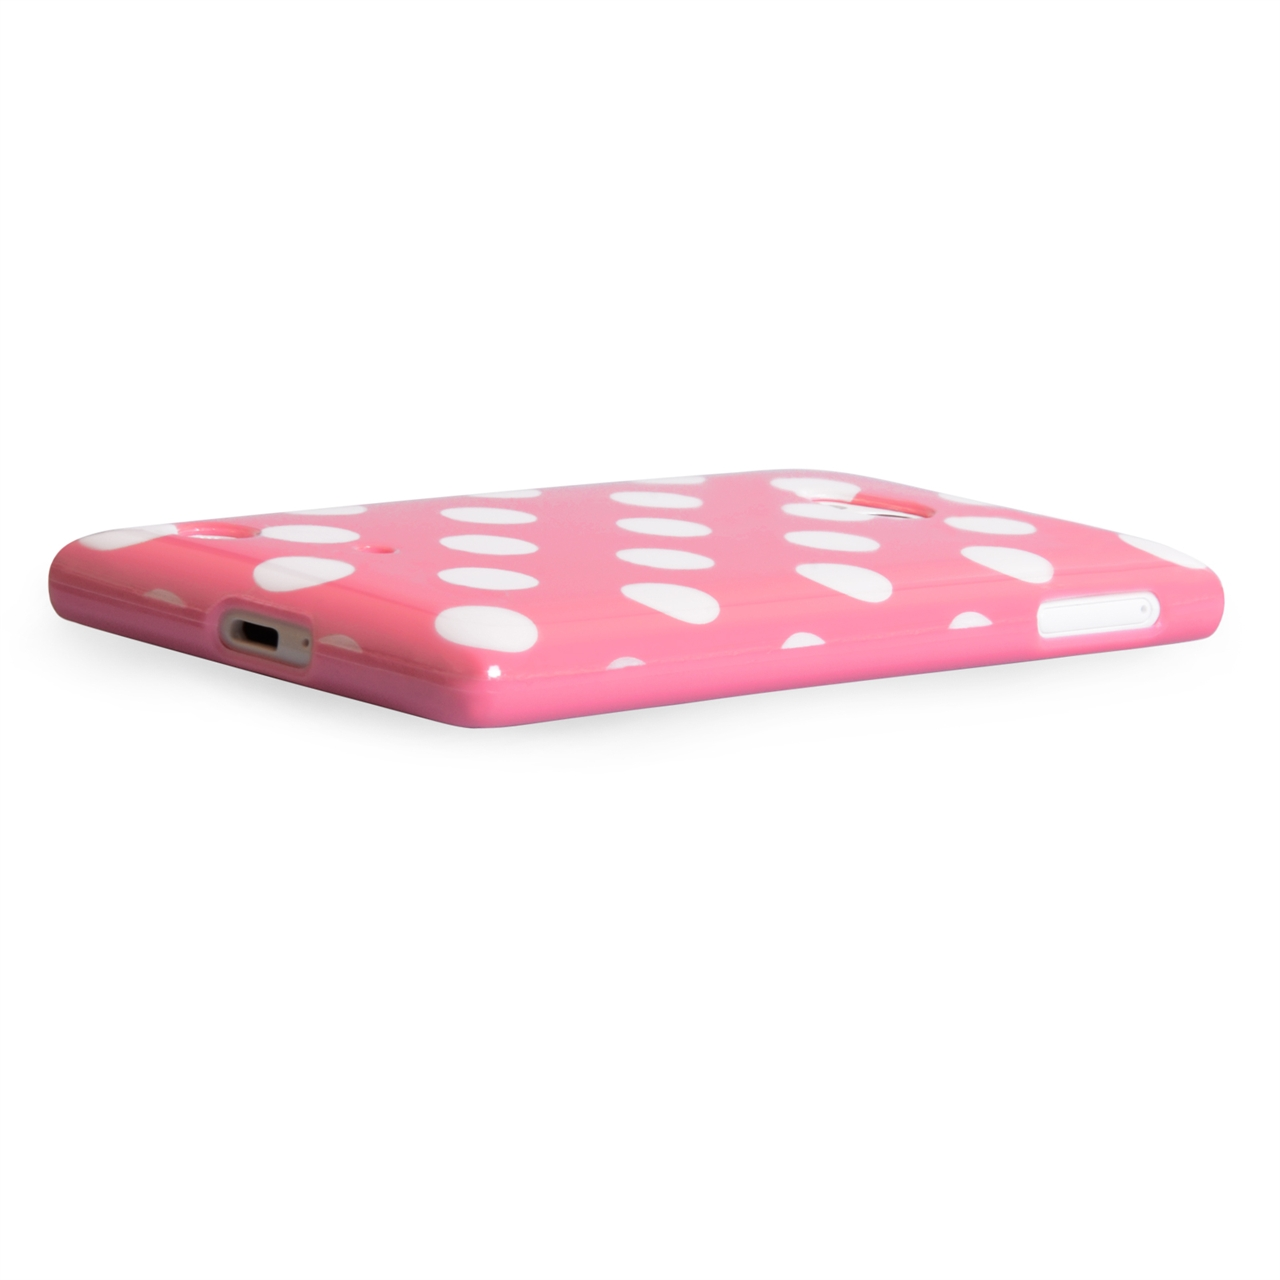 YouSave Accessories Nokia Lumia 720 Polka Dot Case - Baby Pink